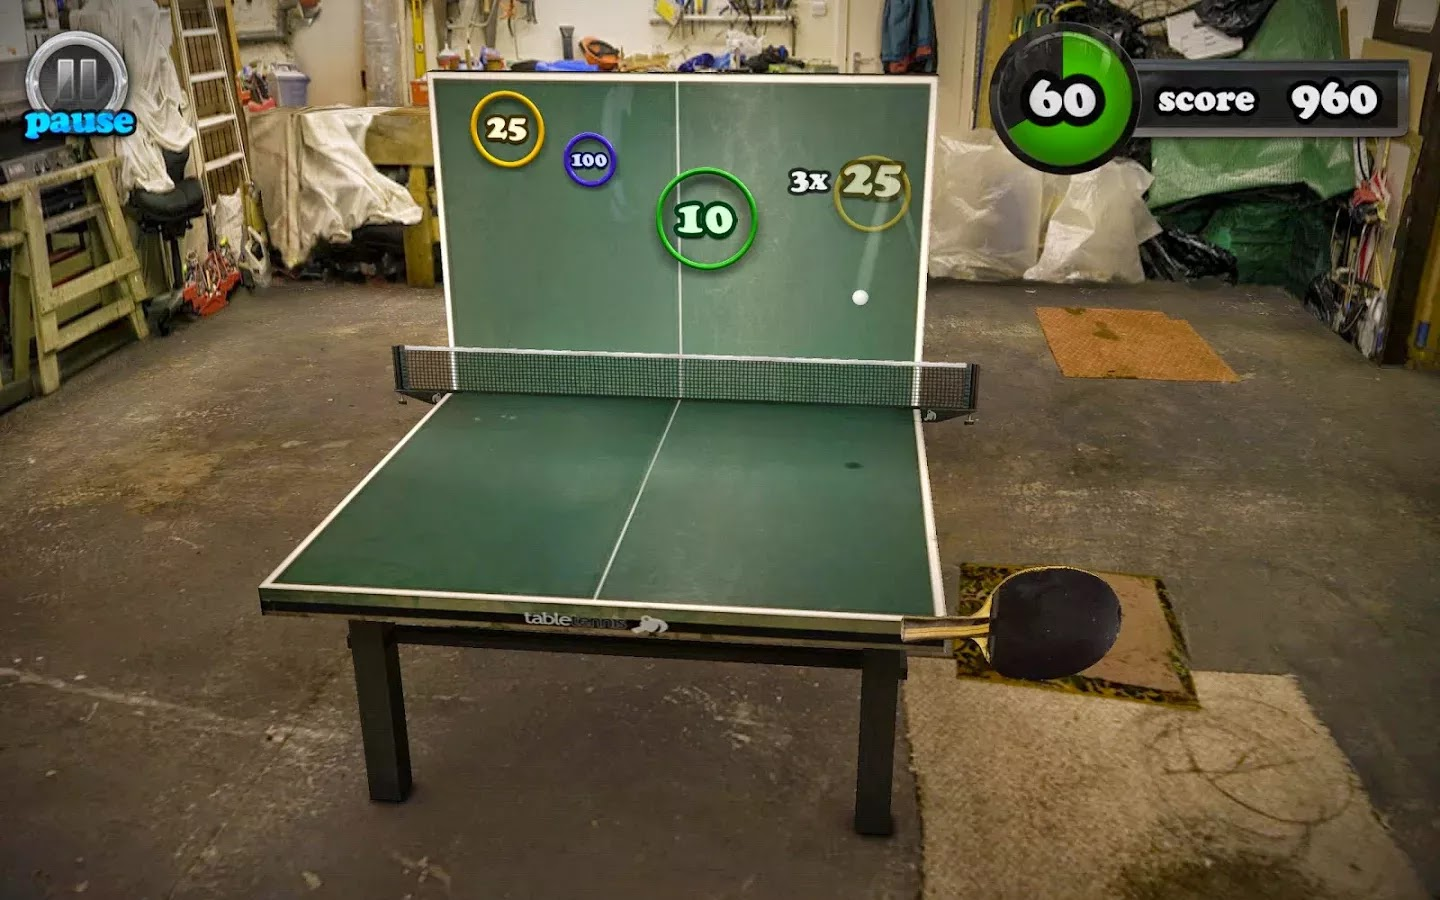 Table Tennis Touch v1.1.1628.1